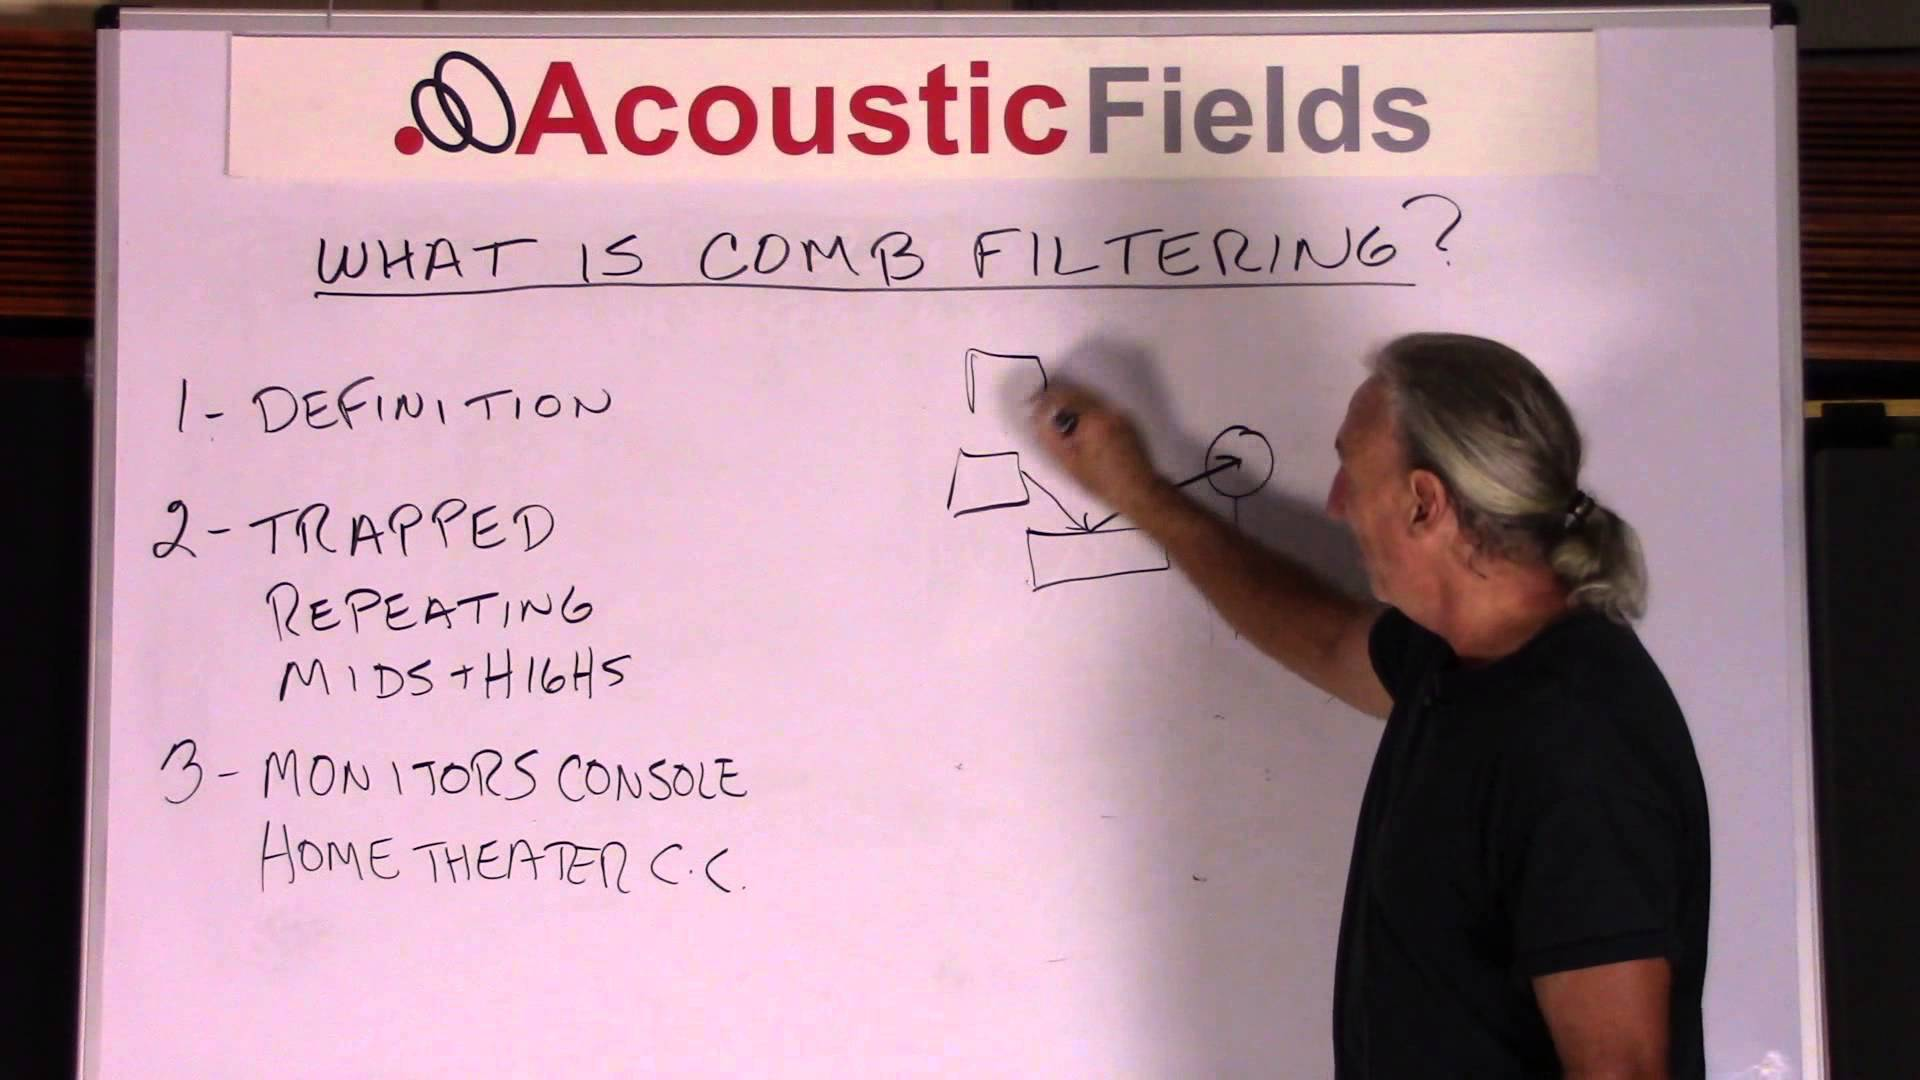 What Is Comb Filtering And How Does It Relate To Room Acoustics